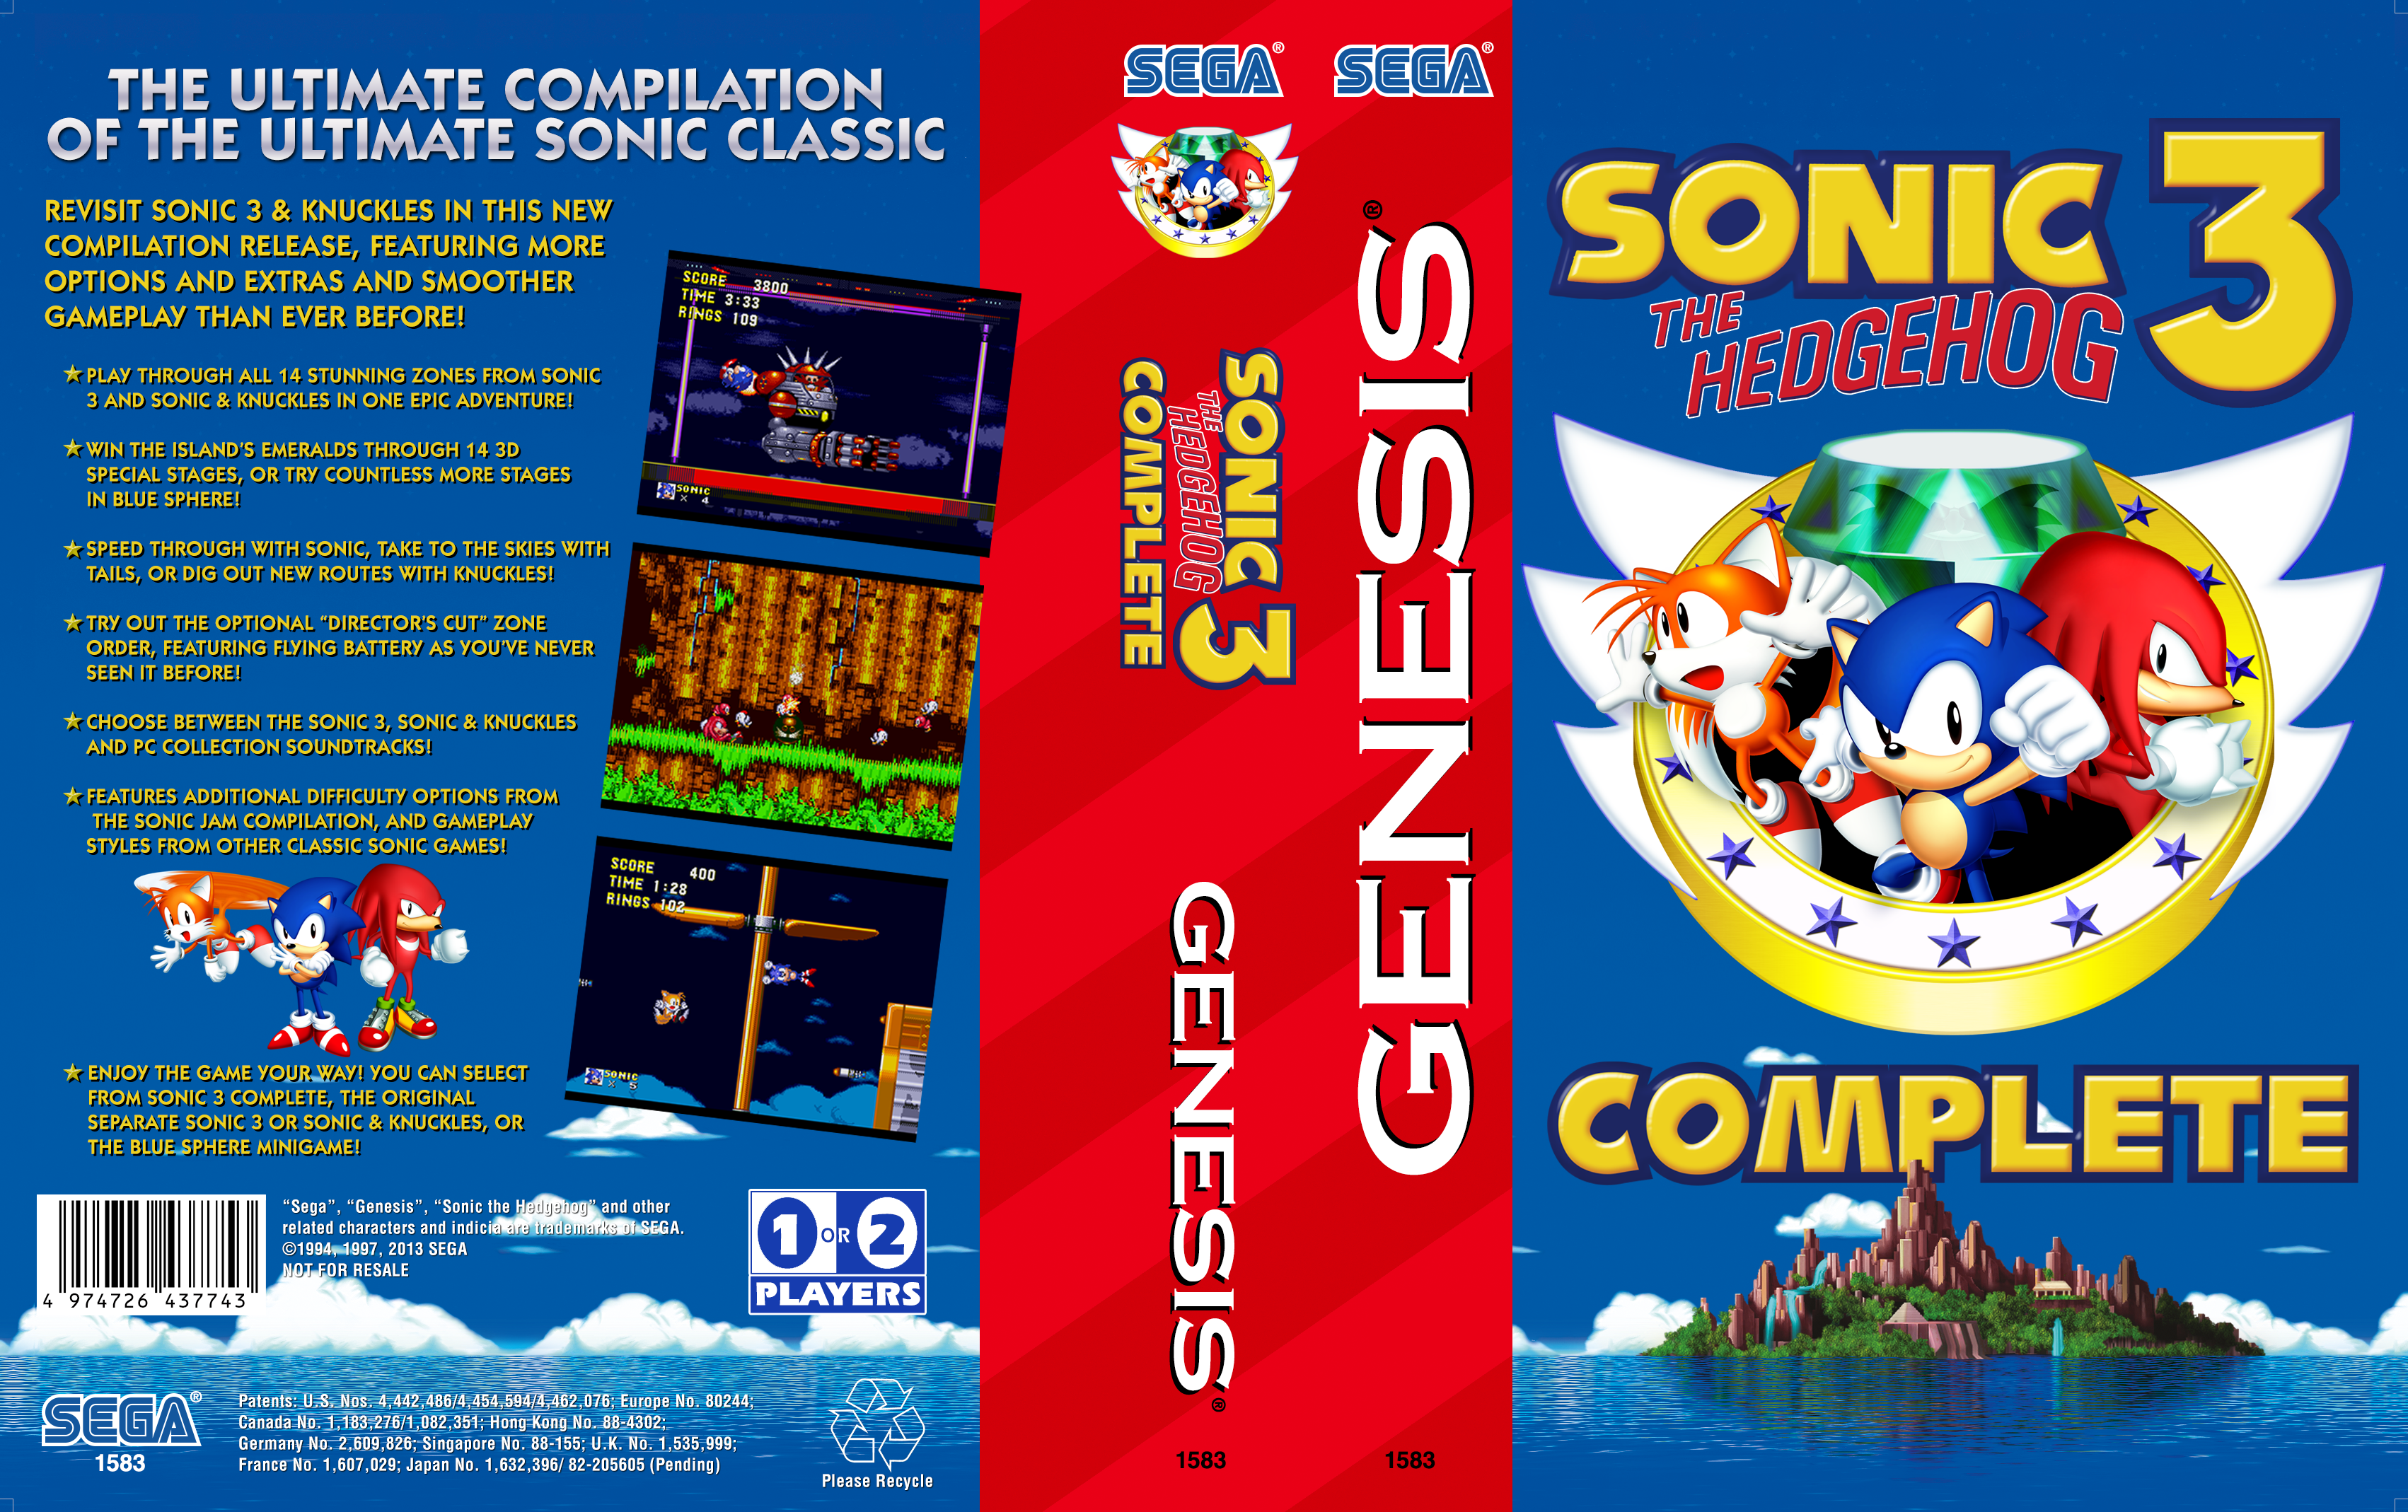 sonic the hedgehog 3 complete apk